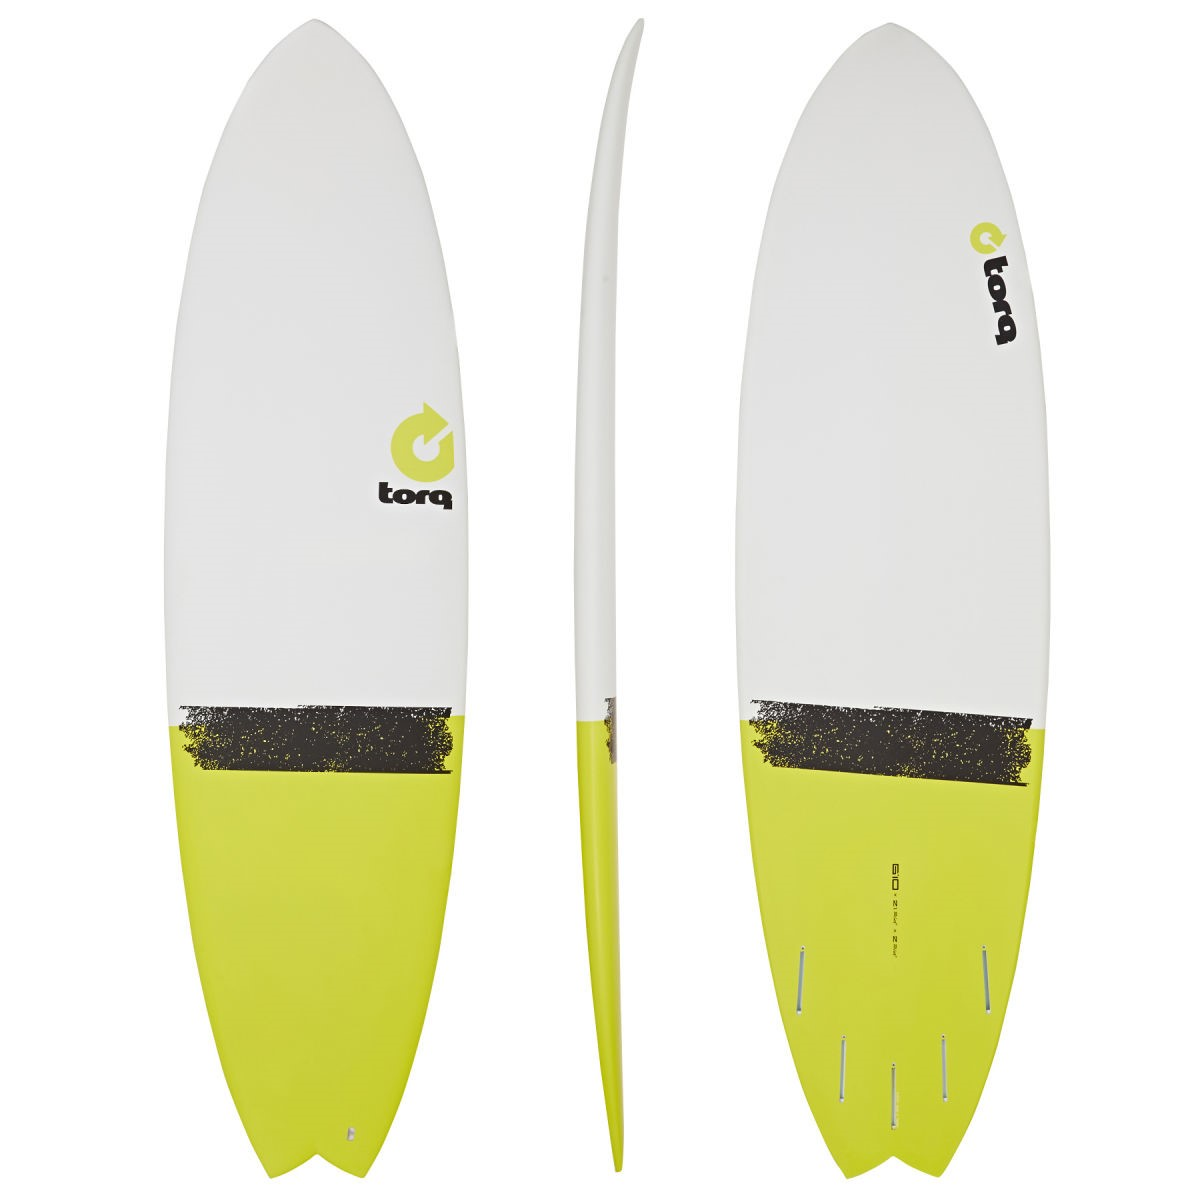 Torq Surf Boards